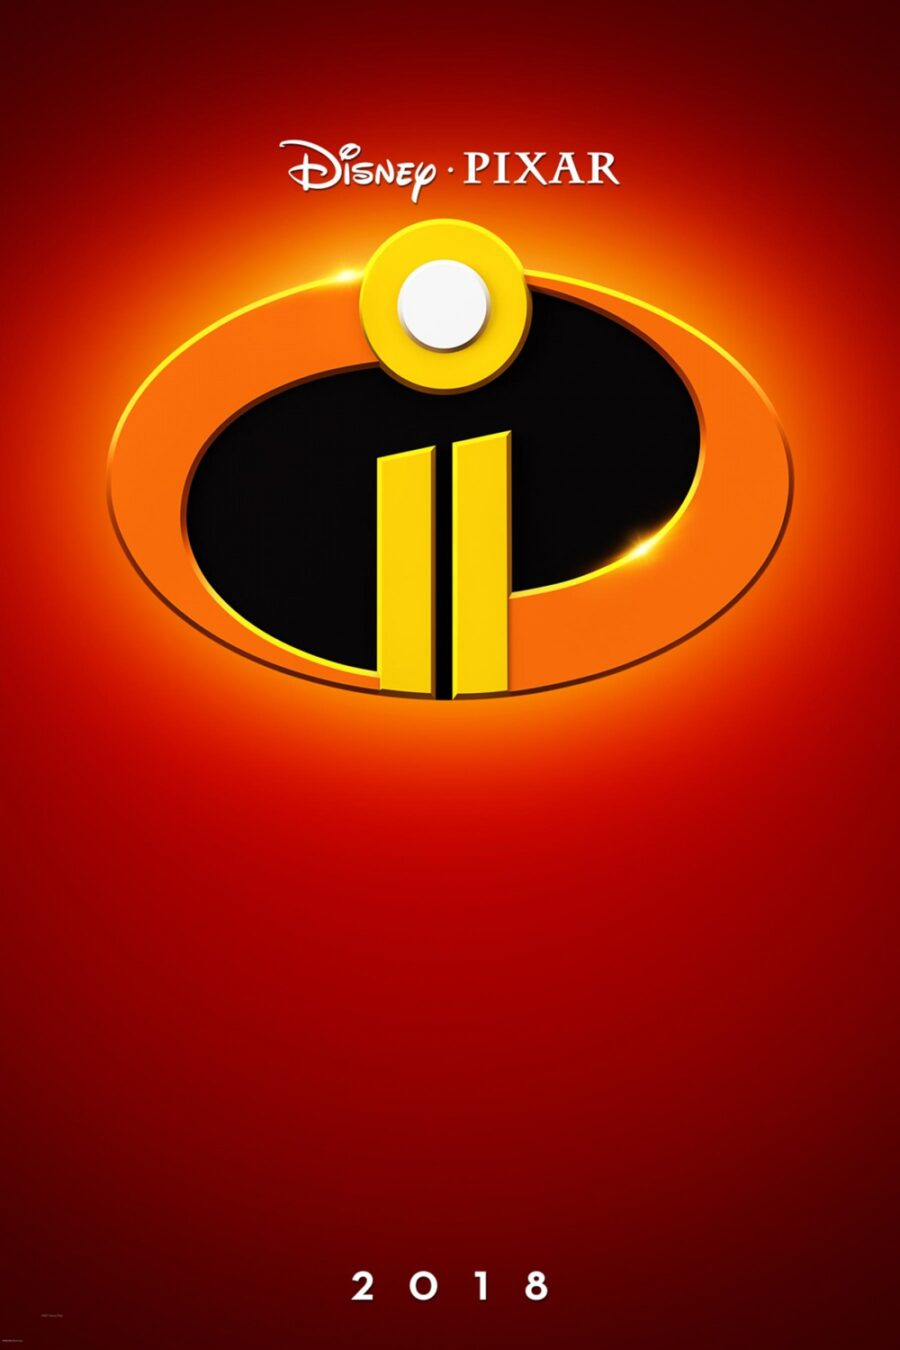 Pixar movie Incredibles 2